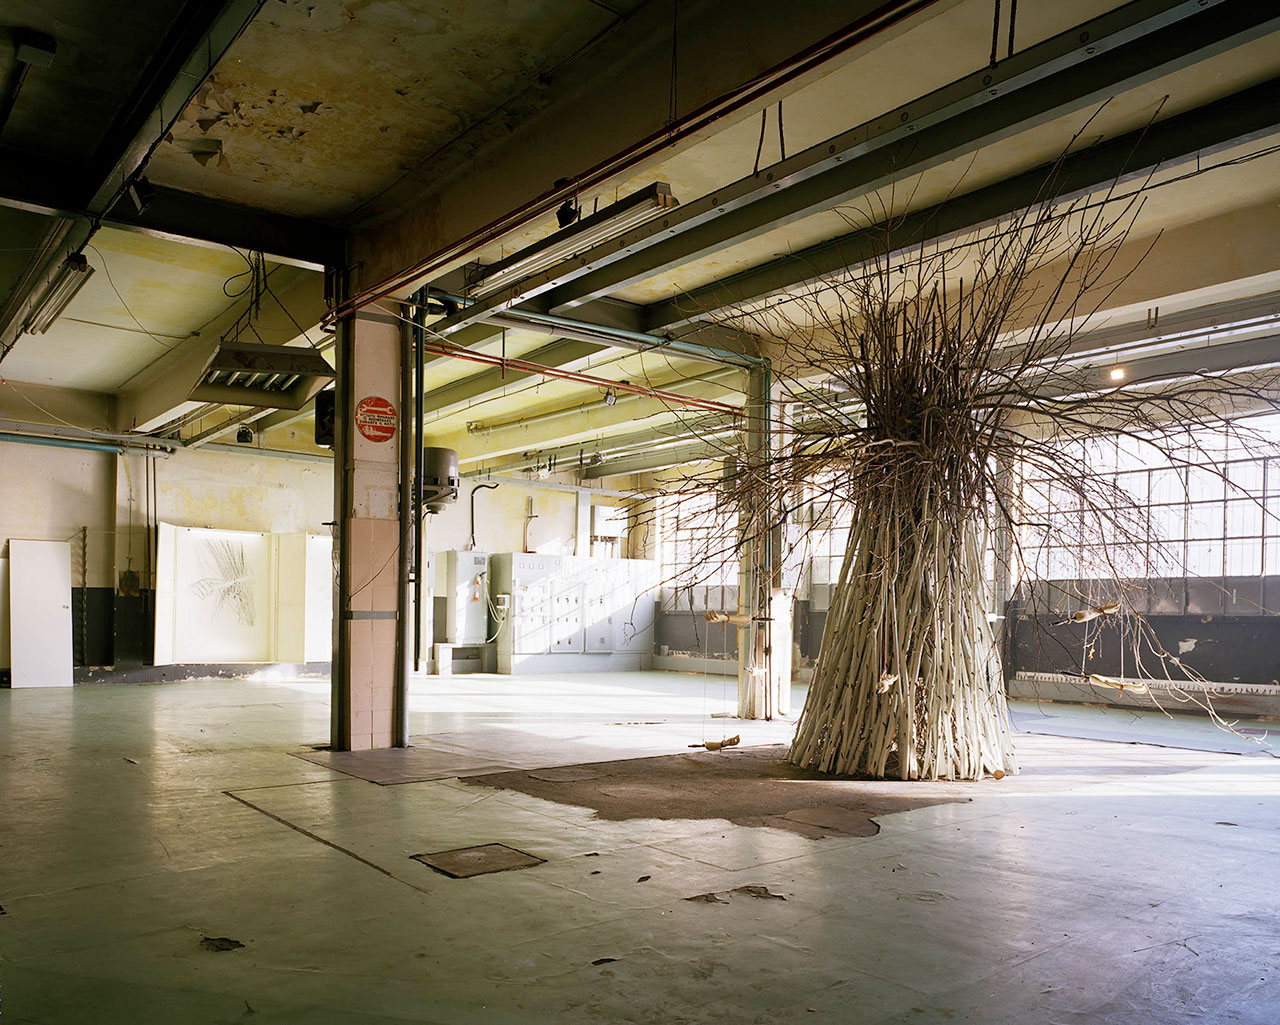 SINFLEX. Excerpt 2006/2007. The End of the Last Nest of Power. Photo by Pierpaolo Ferrari.